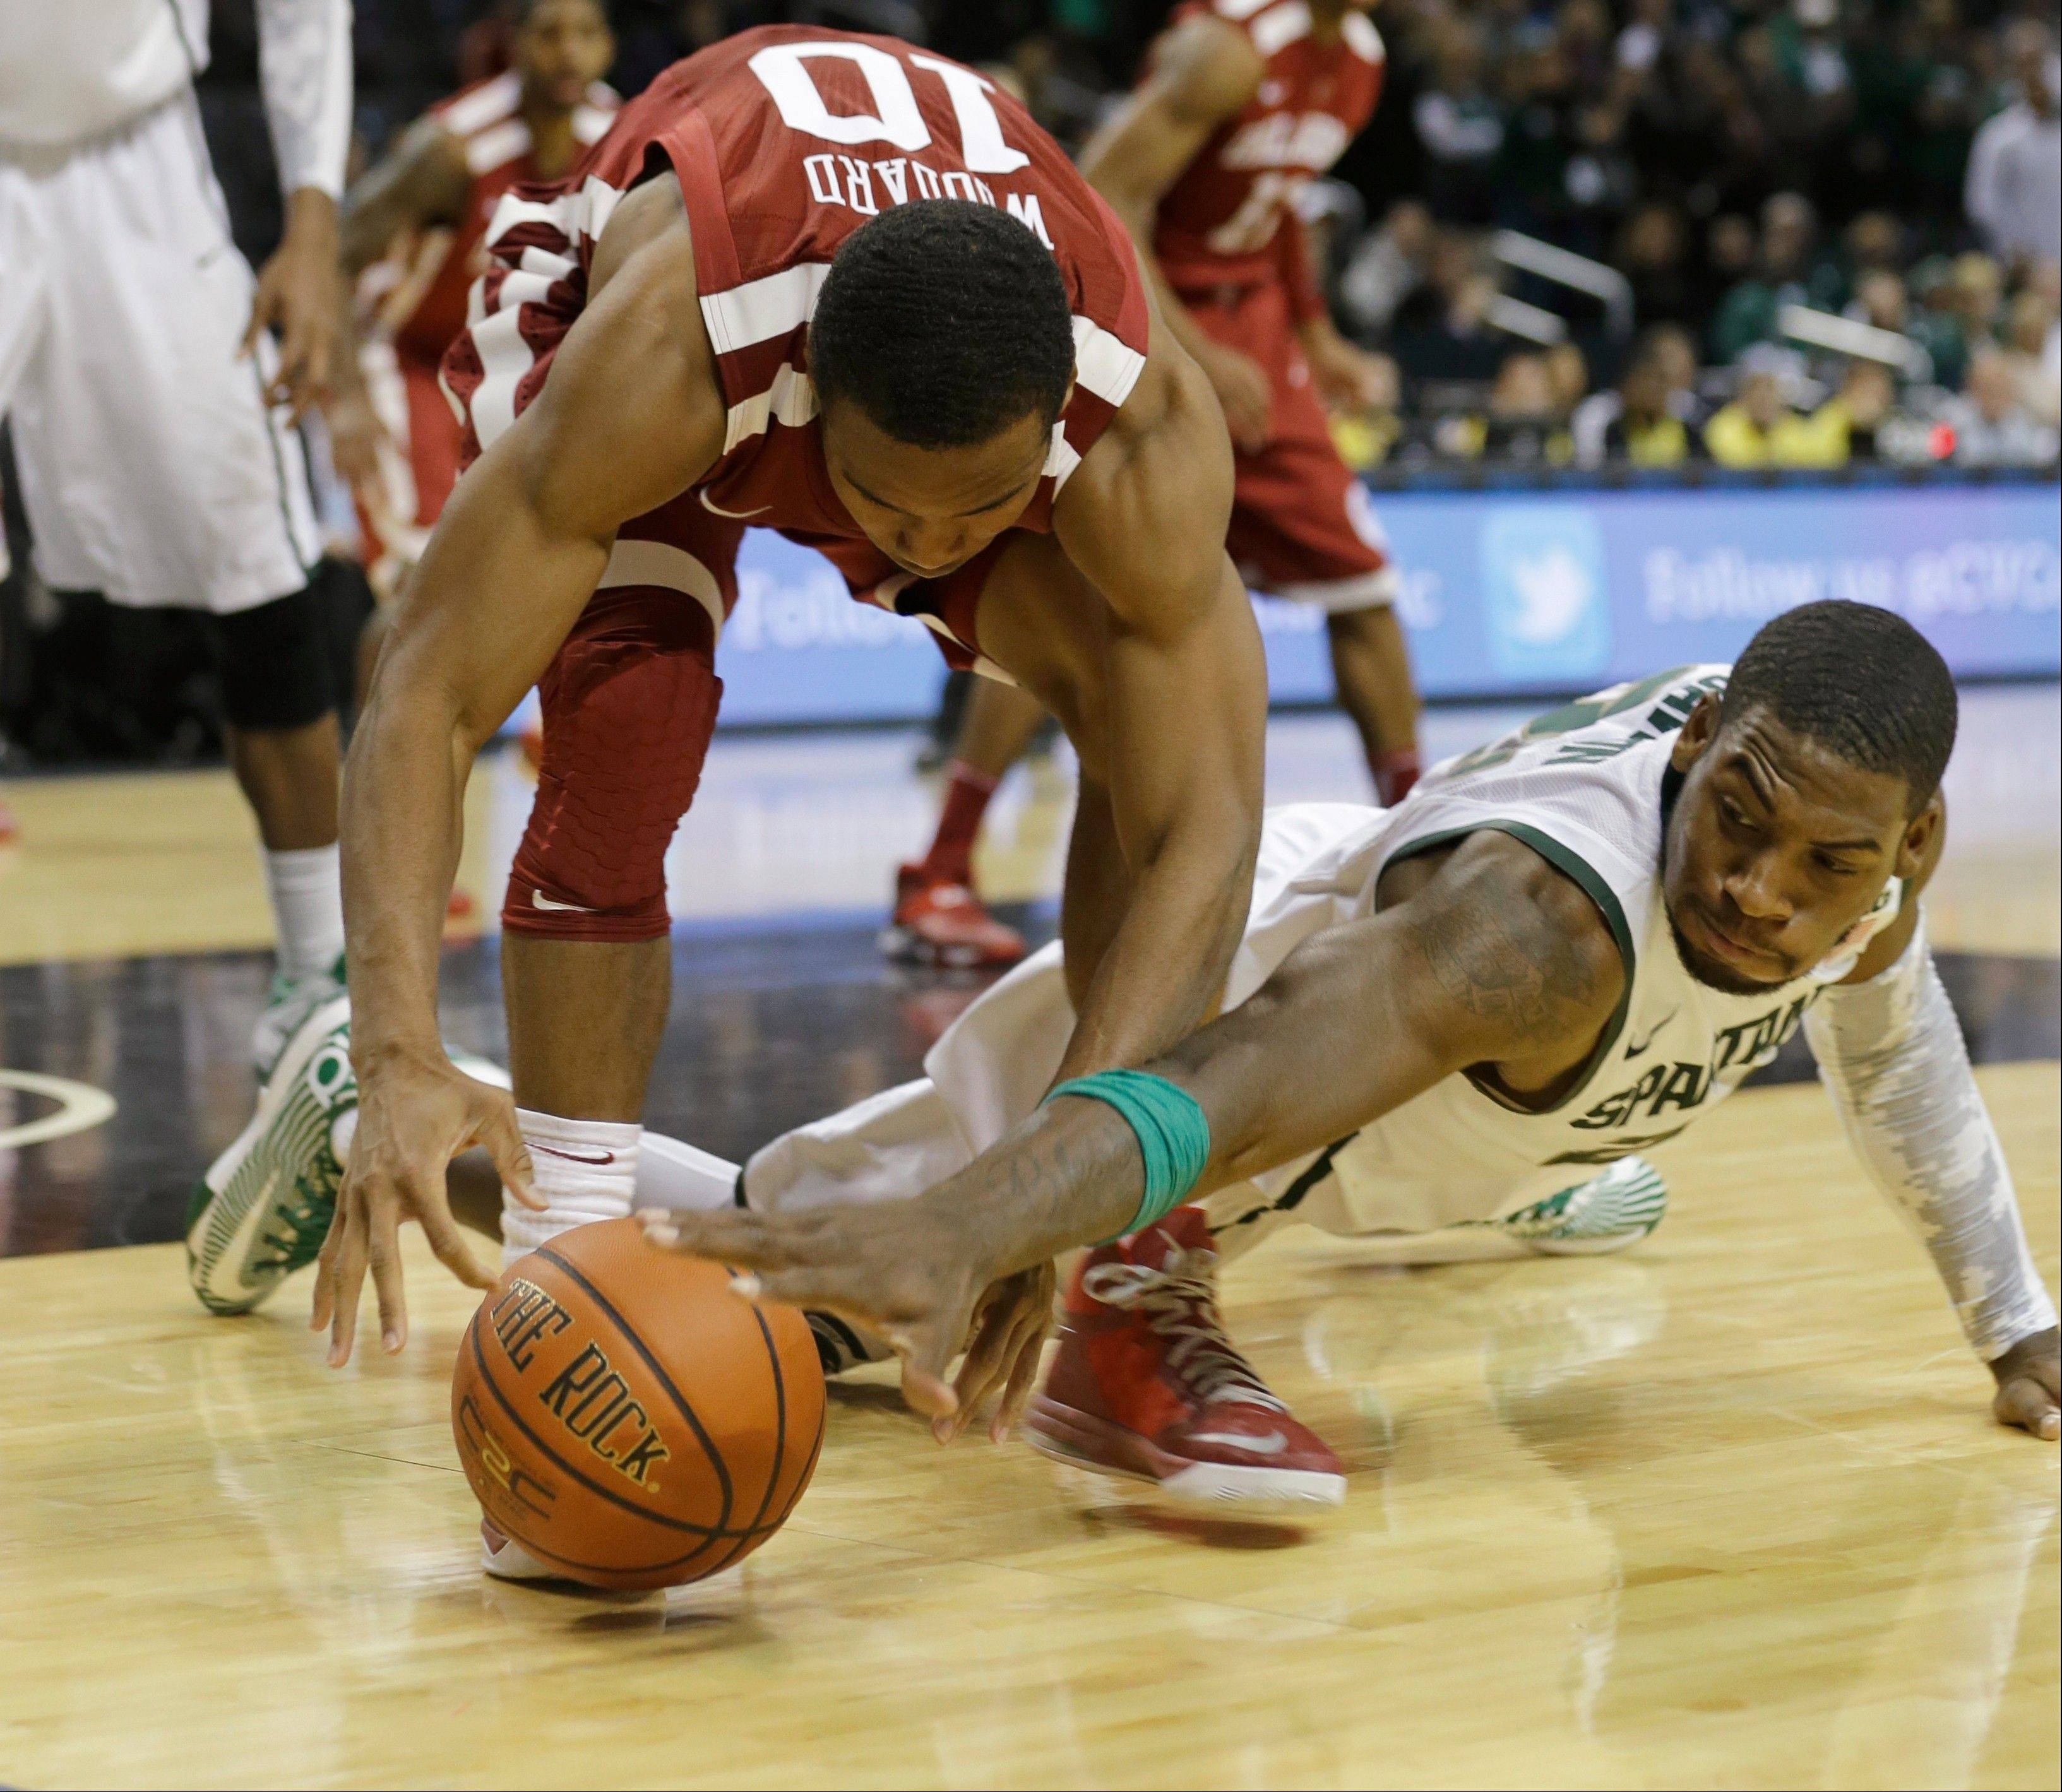 Michigan State�s Branden Dawson, right, and Oklahoma�s Jordan Woodard fight for control of the ball during the second half of the championship game in the Coaches vs. Cancer Classic on Saturday in New York. Michigan State won 87-76.